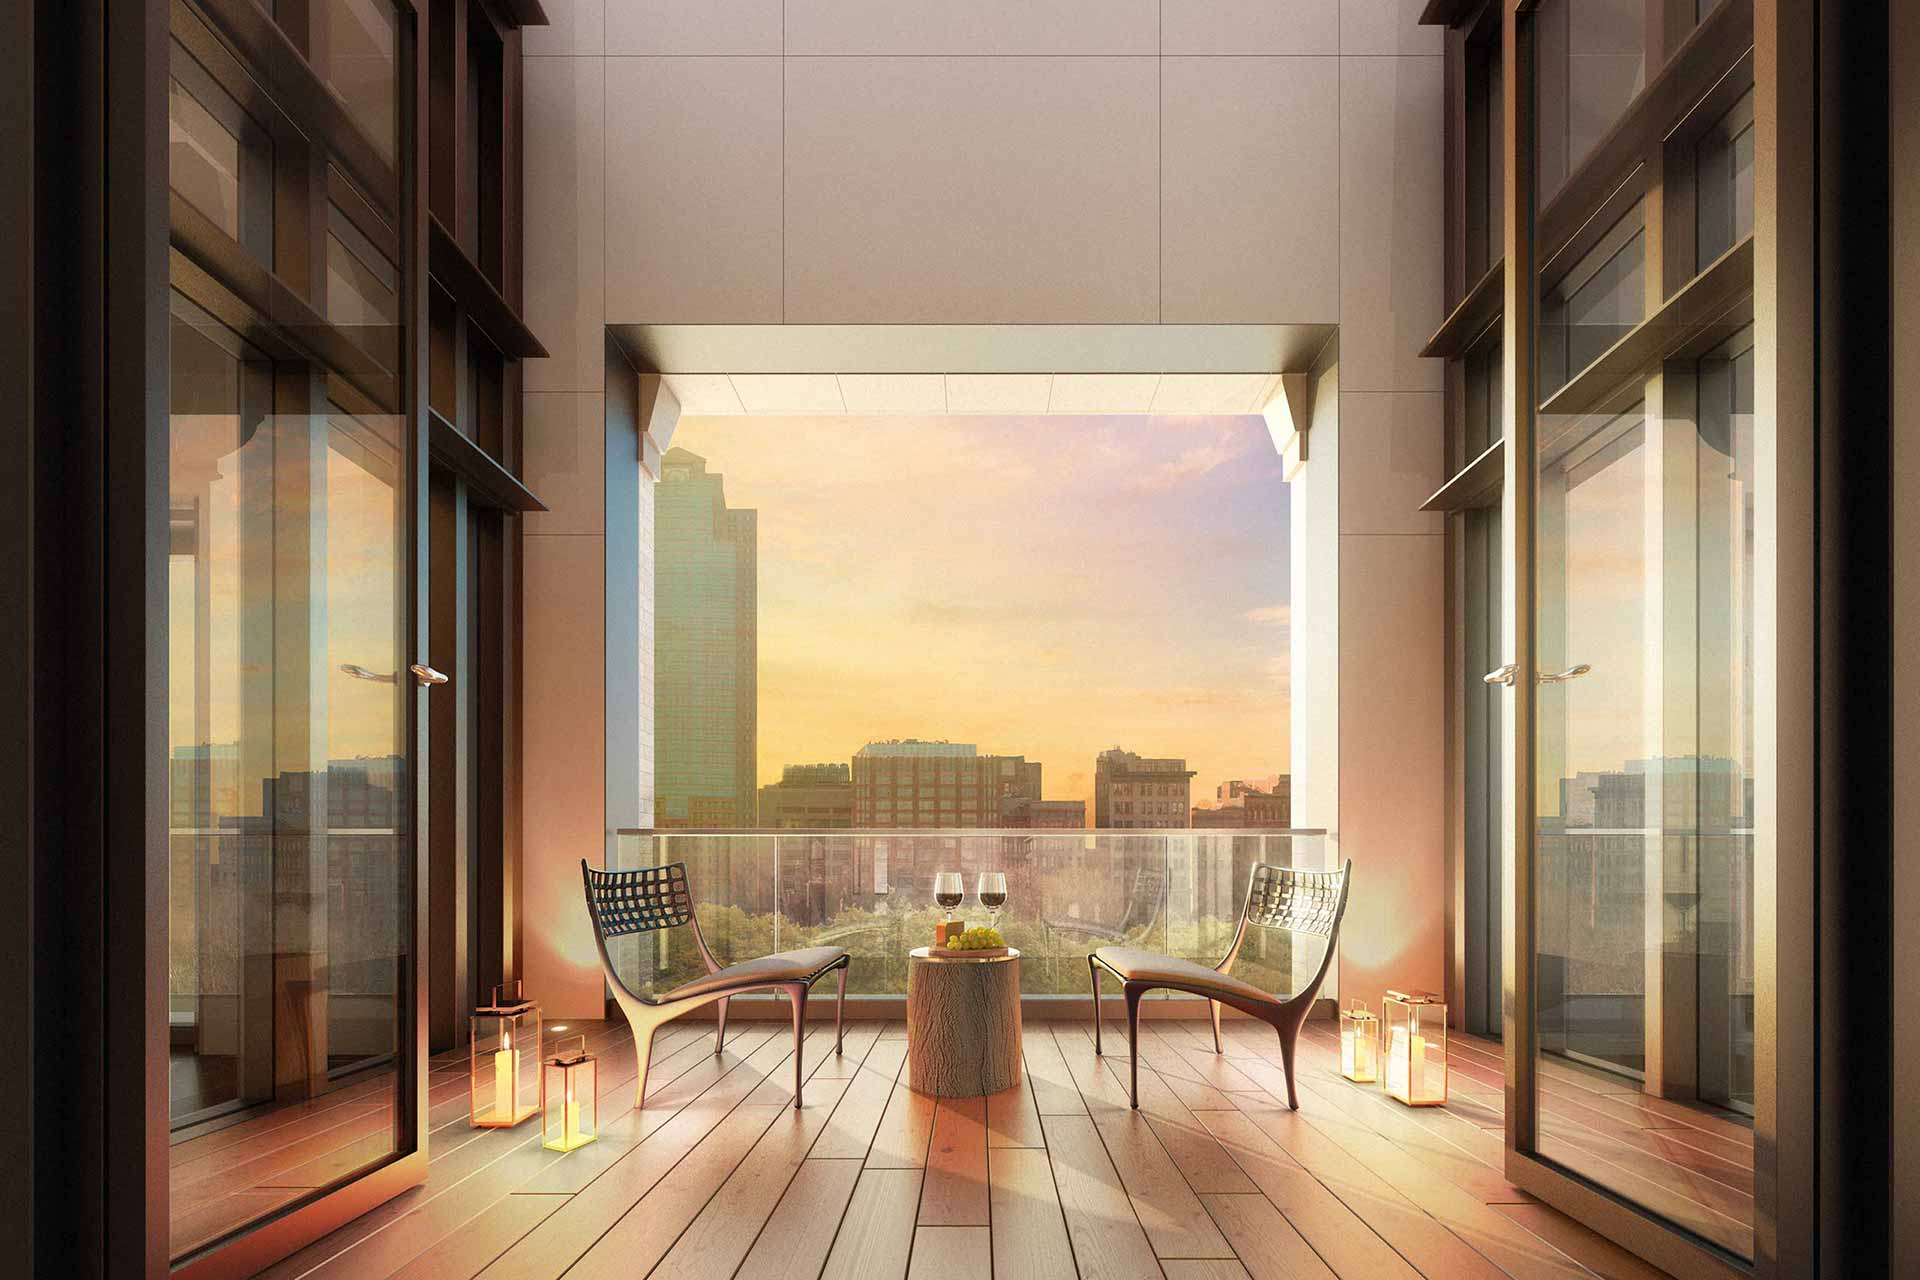 Balcony rendering in dusk